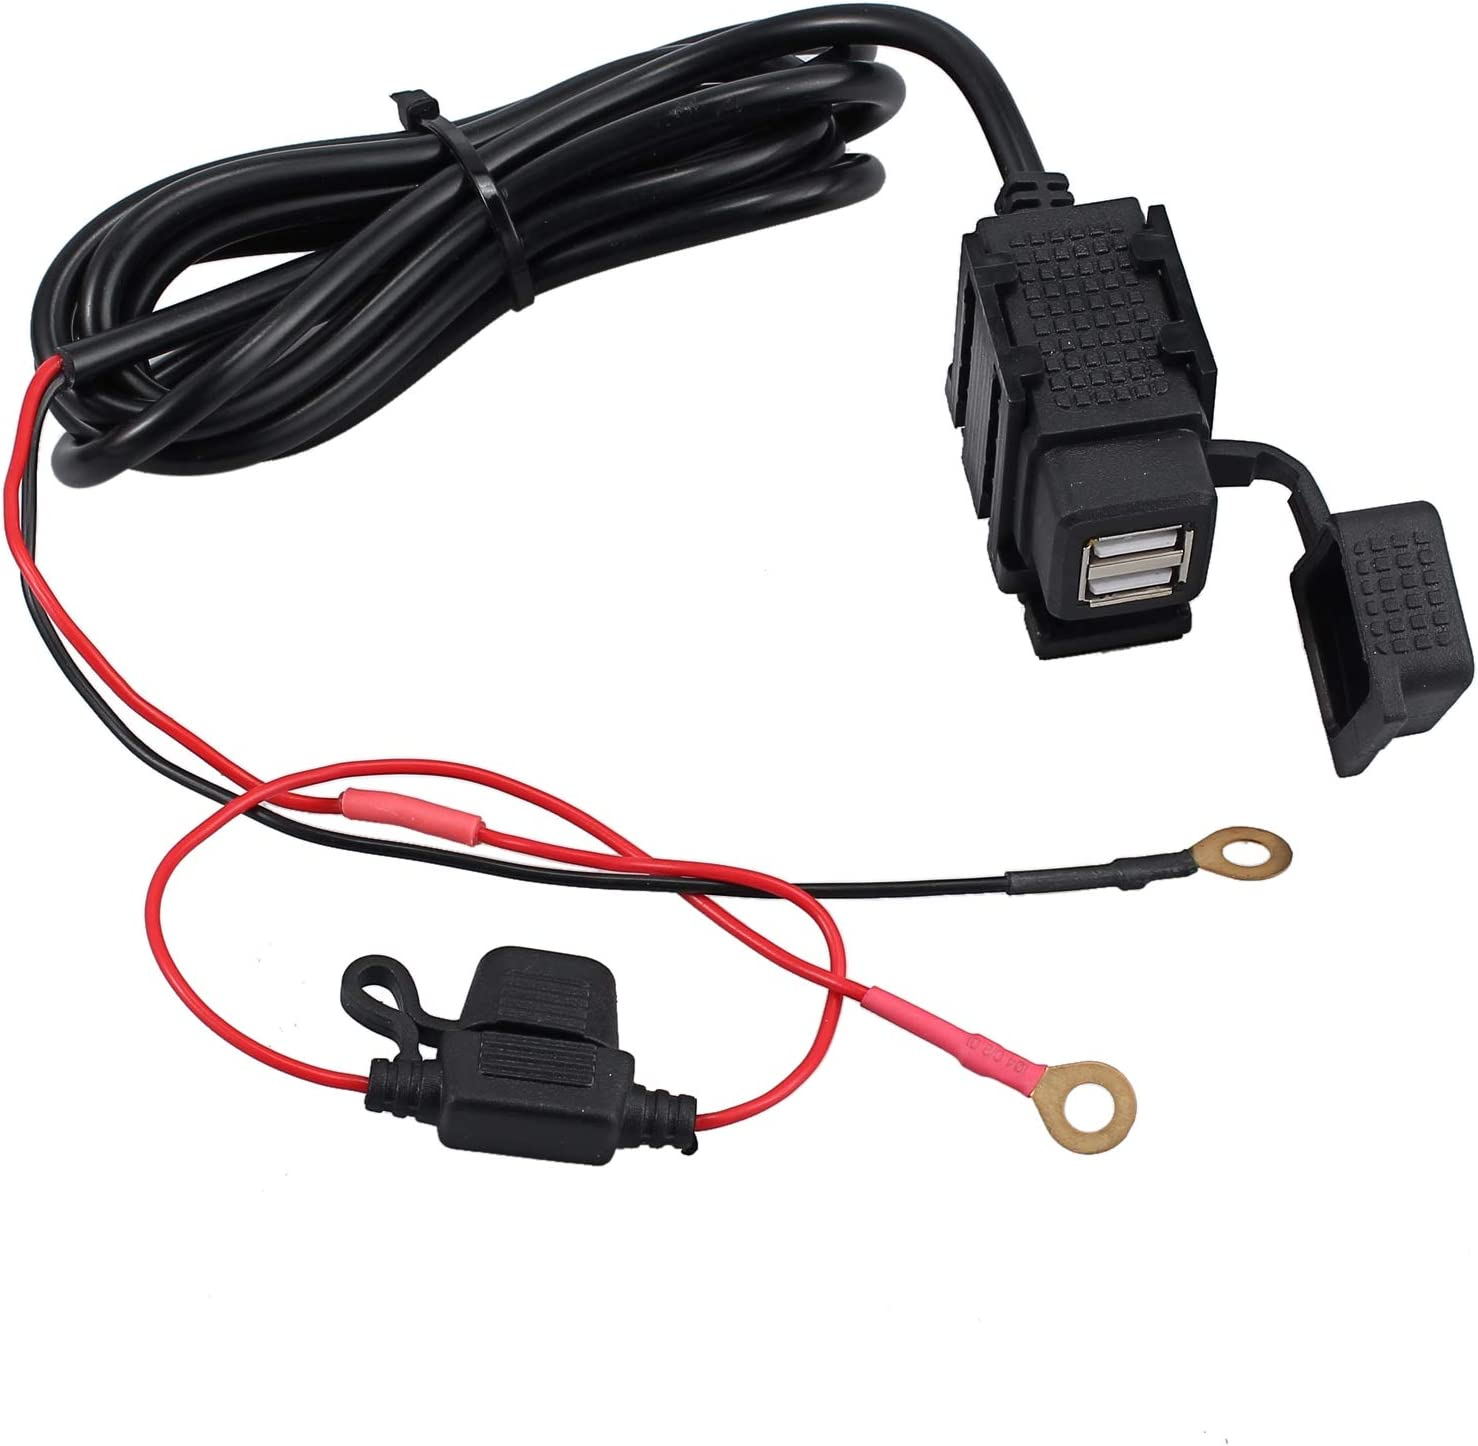 eSynic Waterproof Motorcycle USB Charger Motorbike Phone Adapter 12//24V Input 2.1A //1.0A 5V Output USB Power Supply Port Motorbike Motorcycle Mobile Charger Socket Suitable for Motorbike Motorcycle